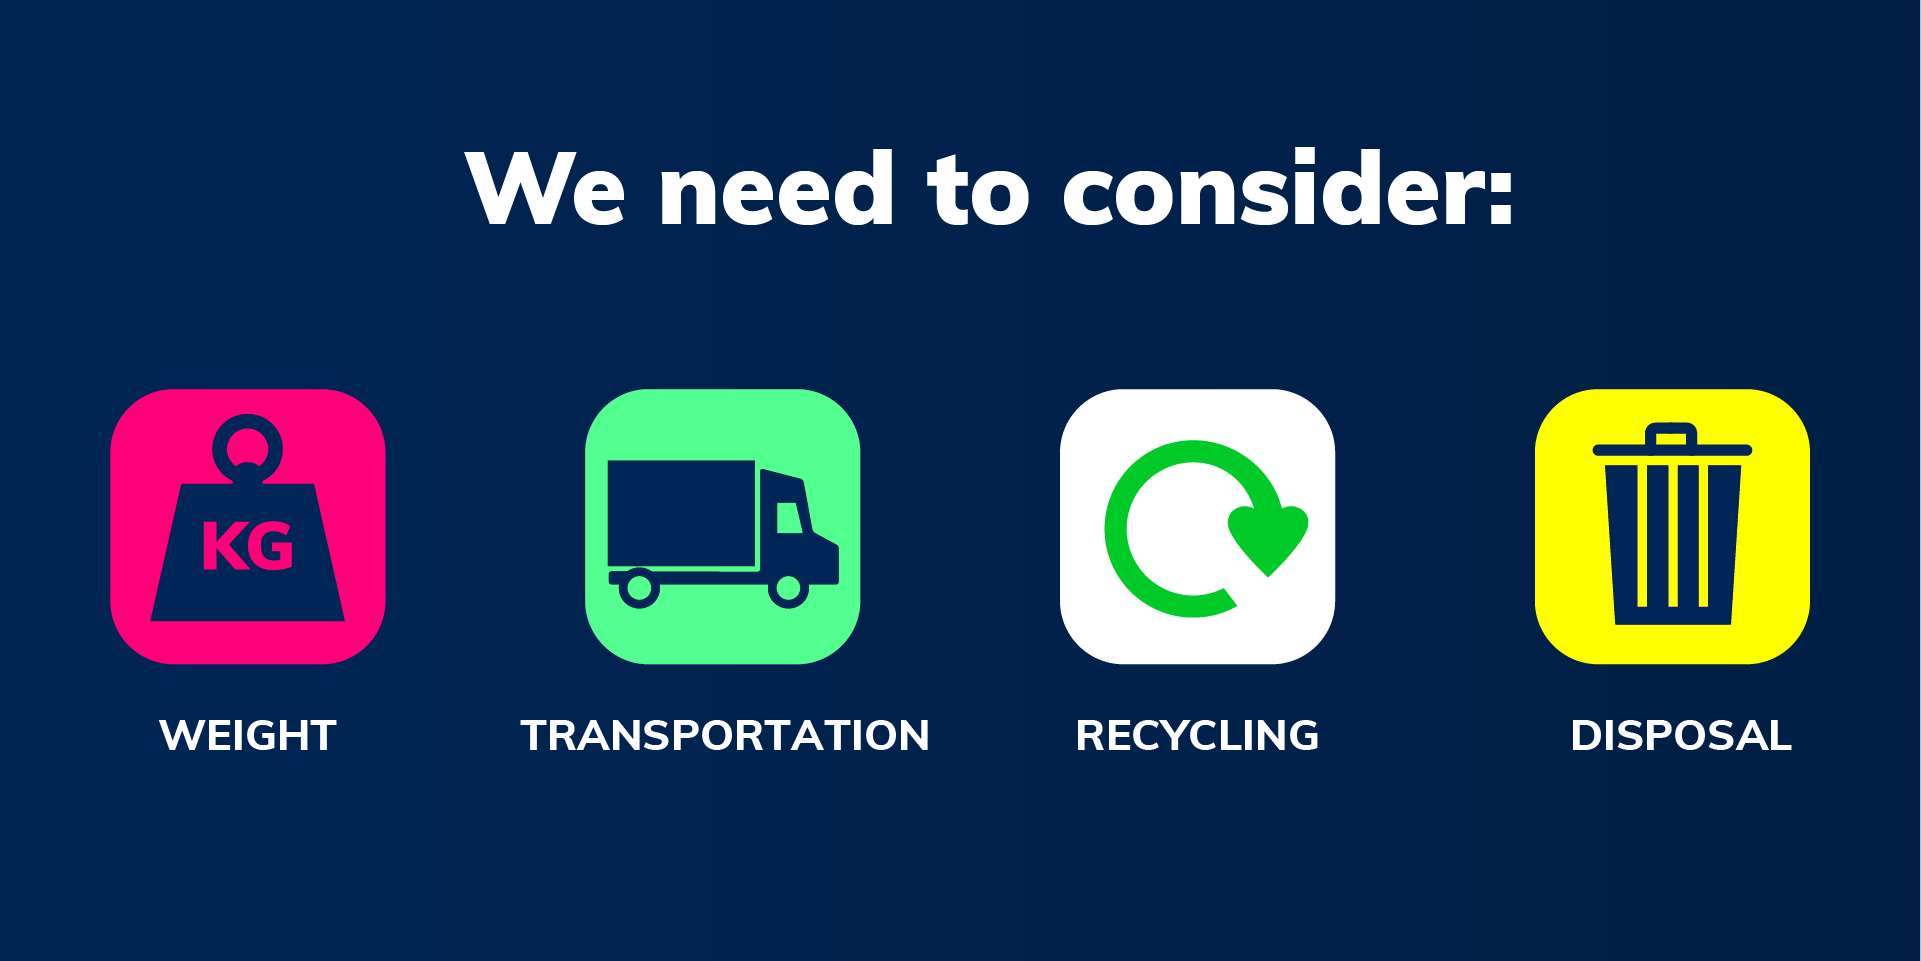 consider when recycling; weight, transport, recycling, disposal